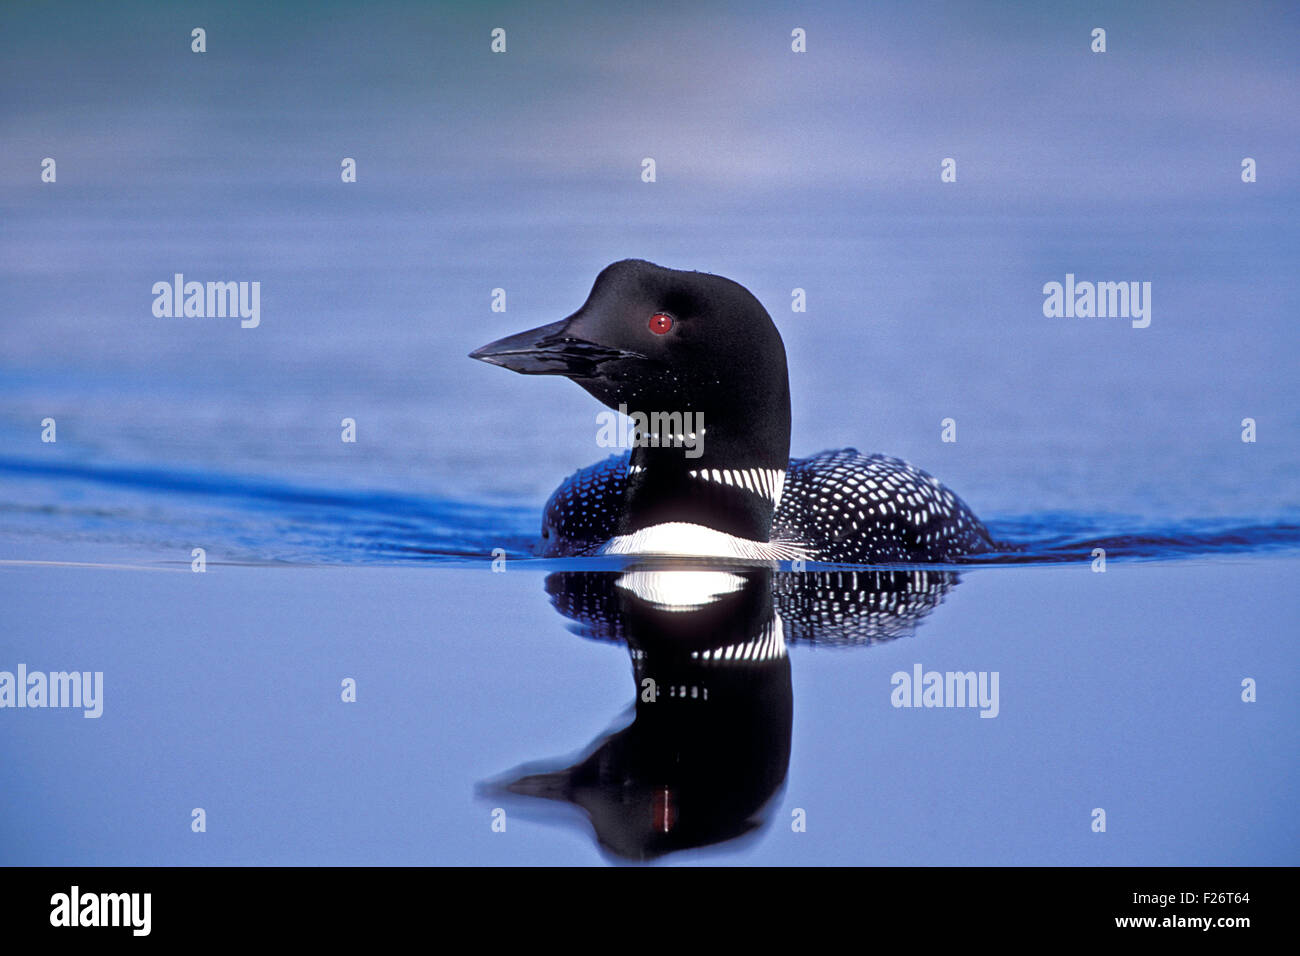 Common Loon swimming in lake. - Stock Image